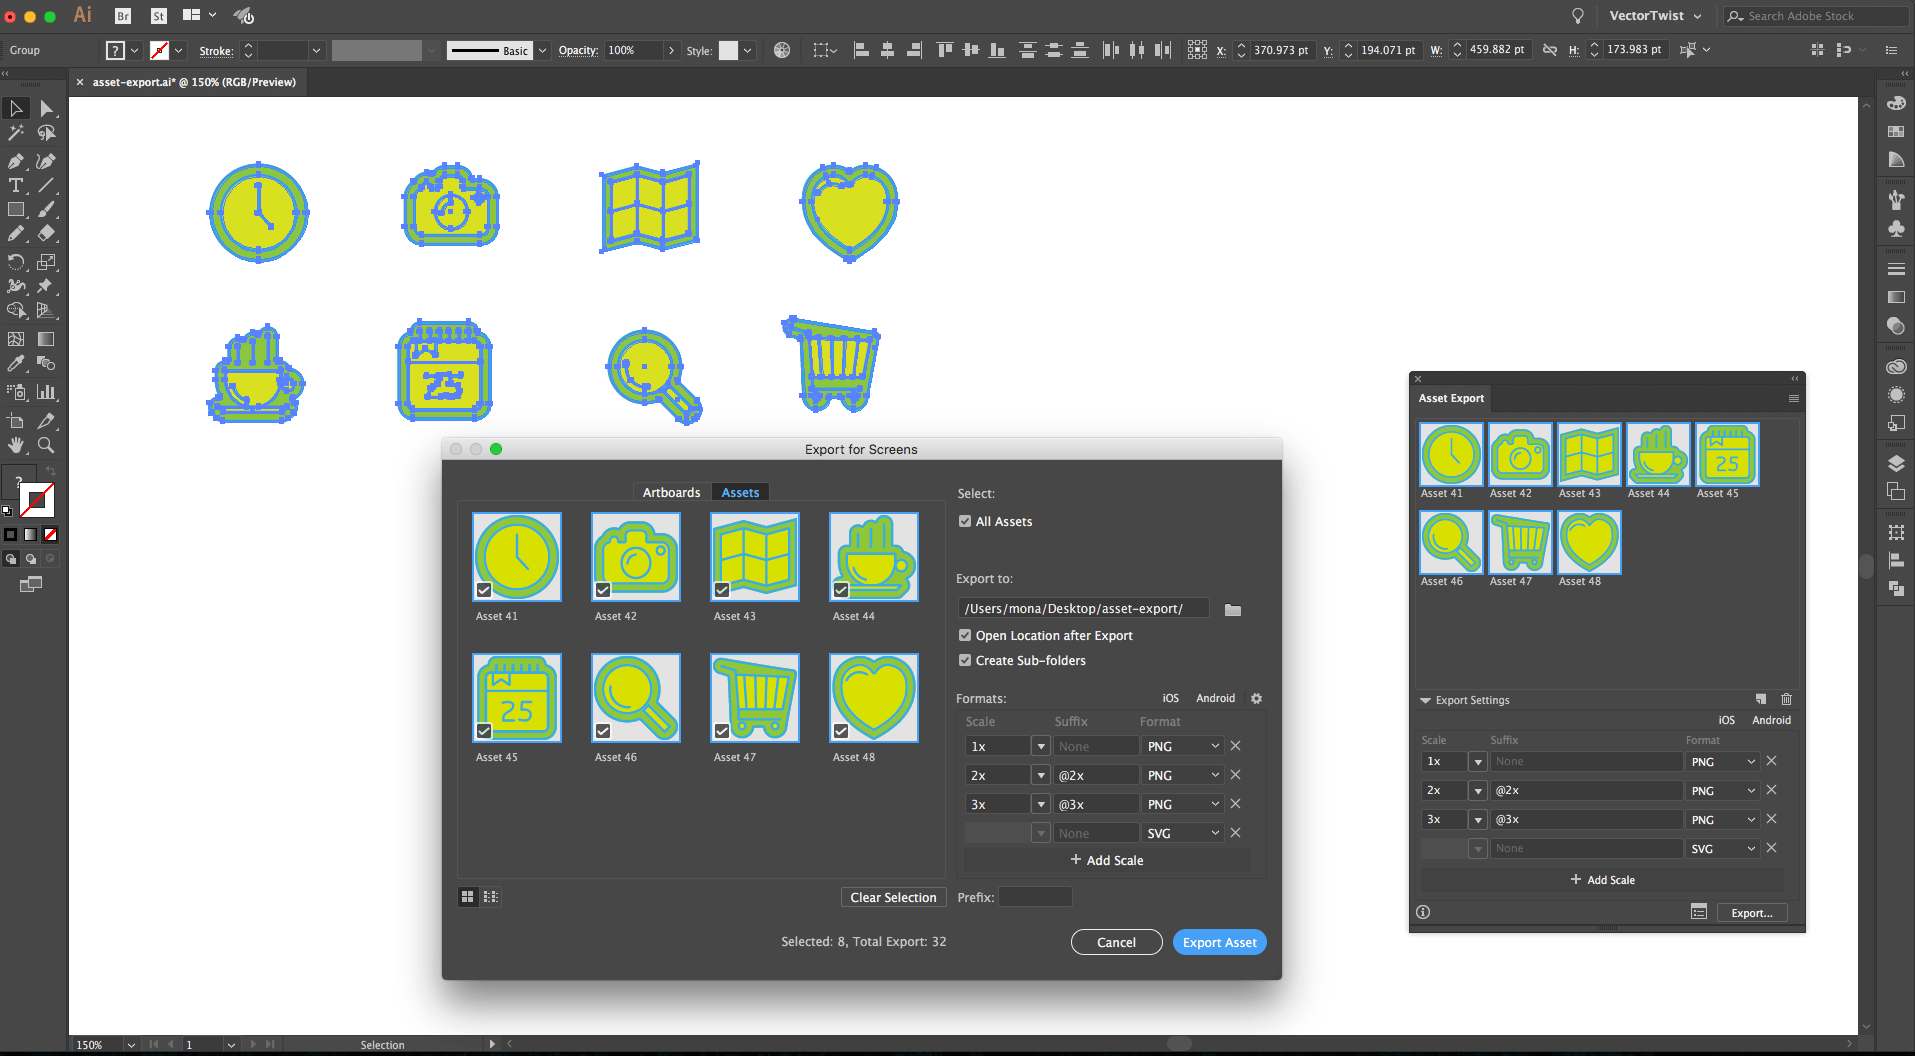 Export for Screens in Illustrator